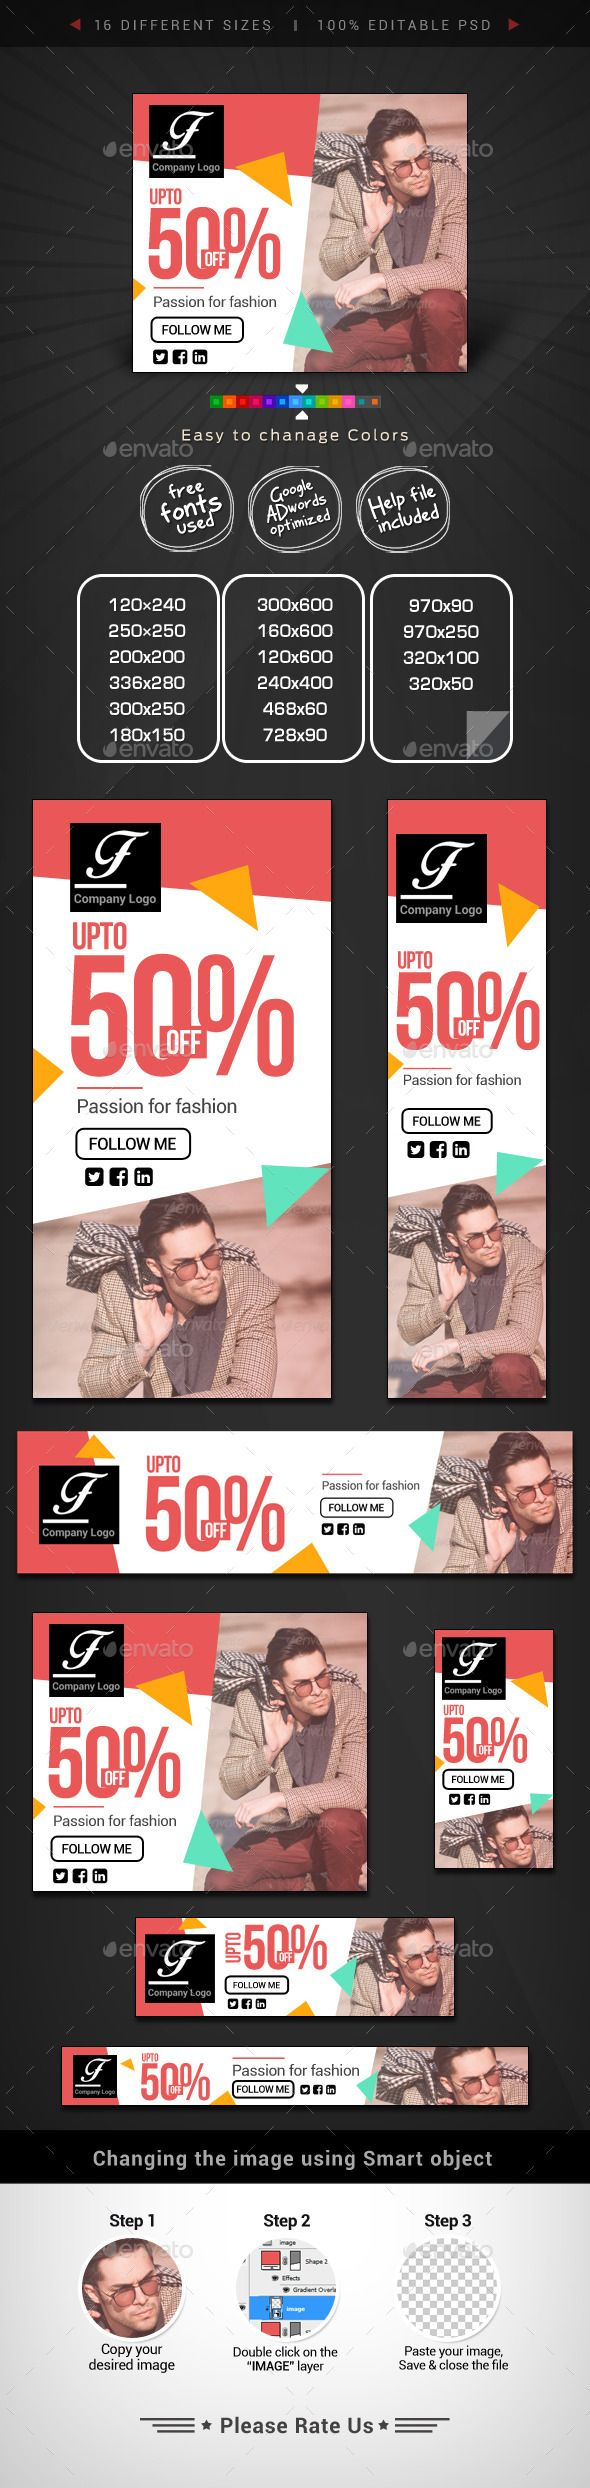 Design google banner ads - Fashion Retail Web Banner Design